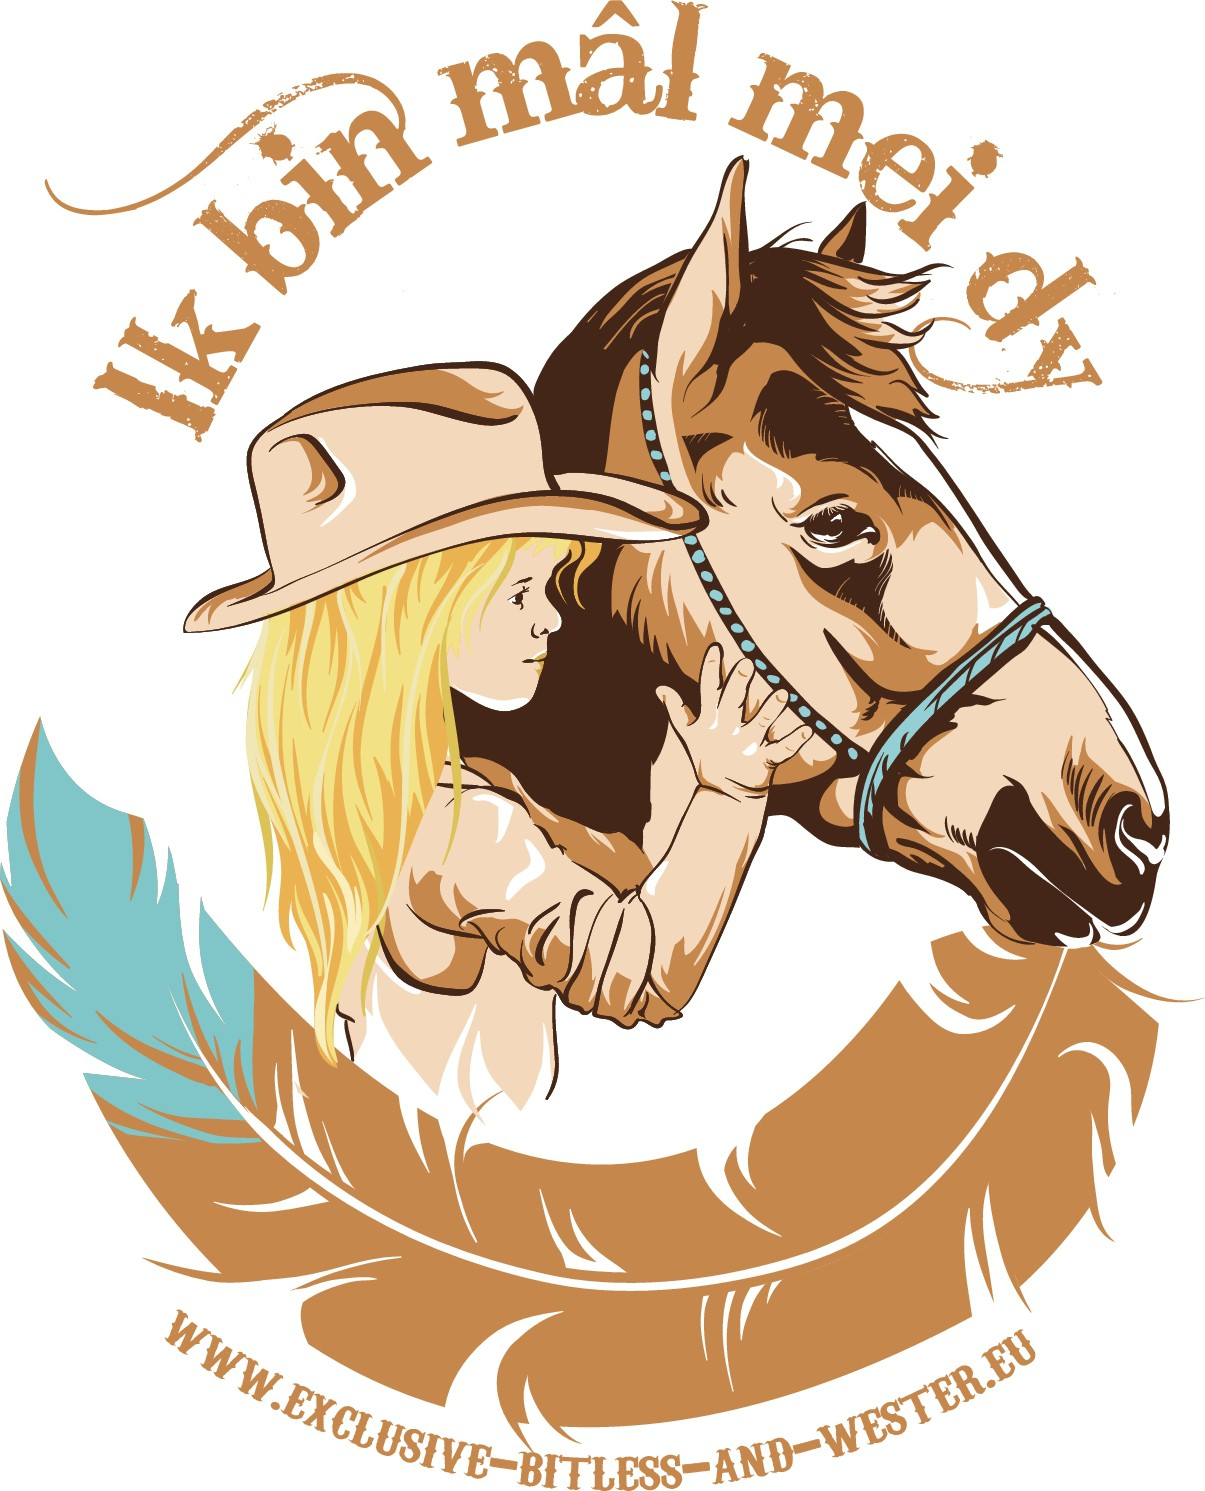 Cowgirl quote @ logo